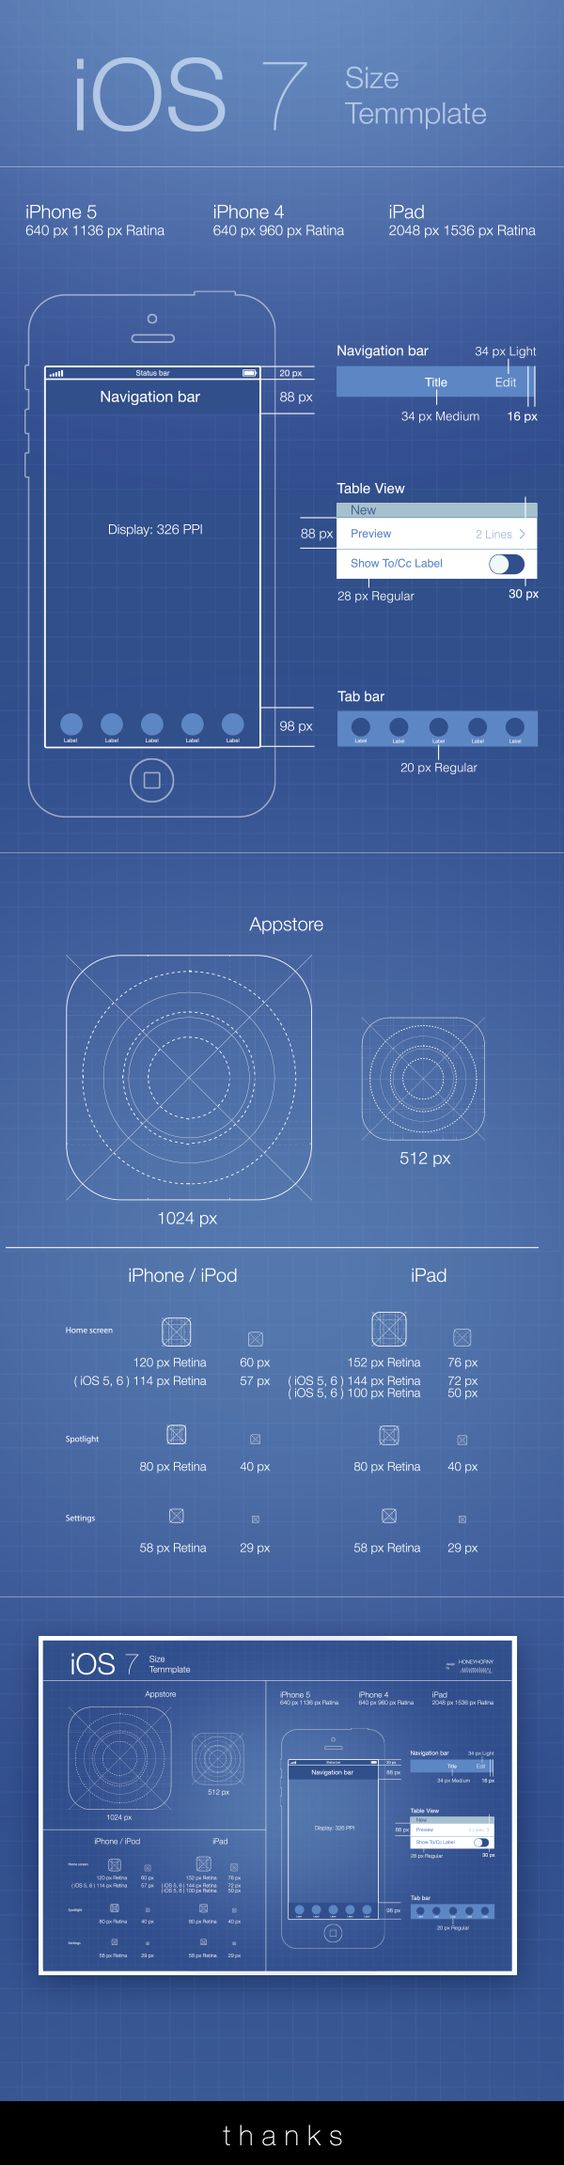 Very important ios interface design guidelines @ Wangcheng Xu collected ...